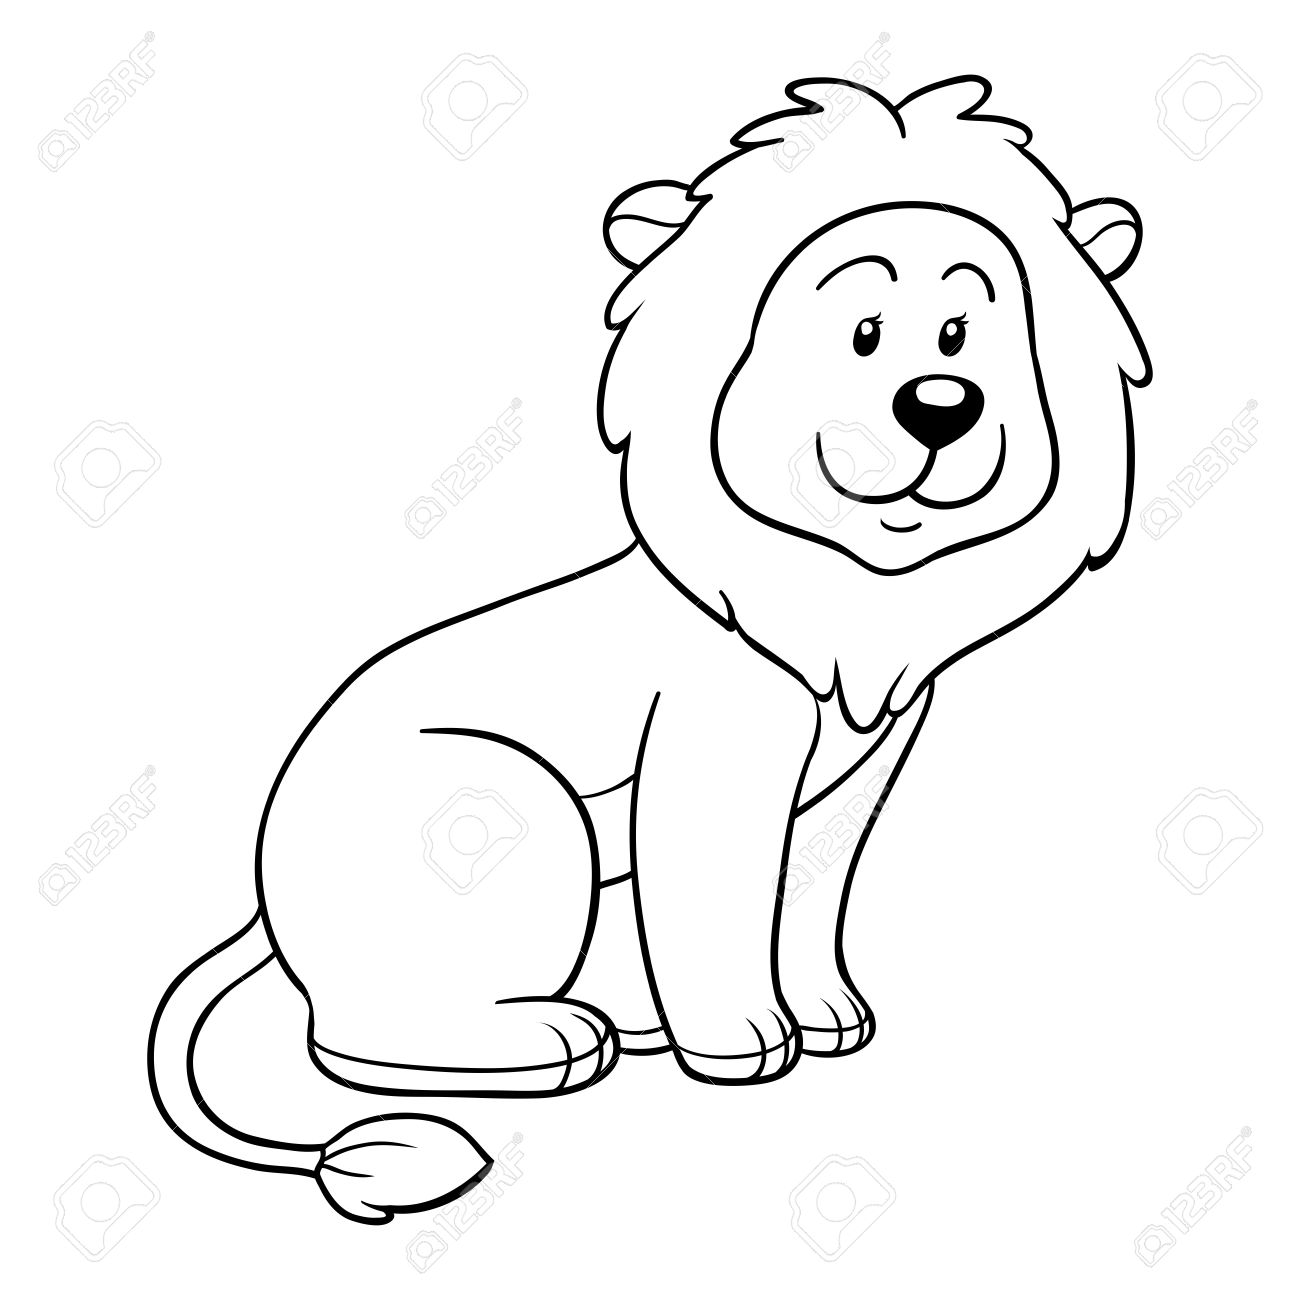 Coloring Book (lion) Royalty Free Cliparts, Vectors, And Stock ...